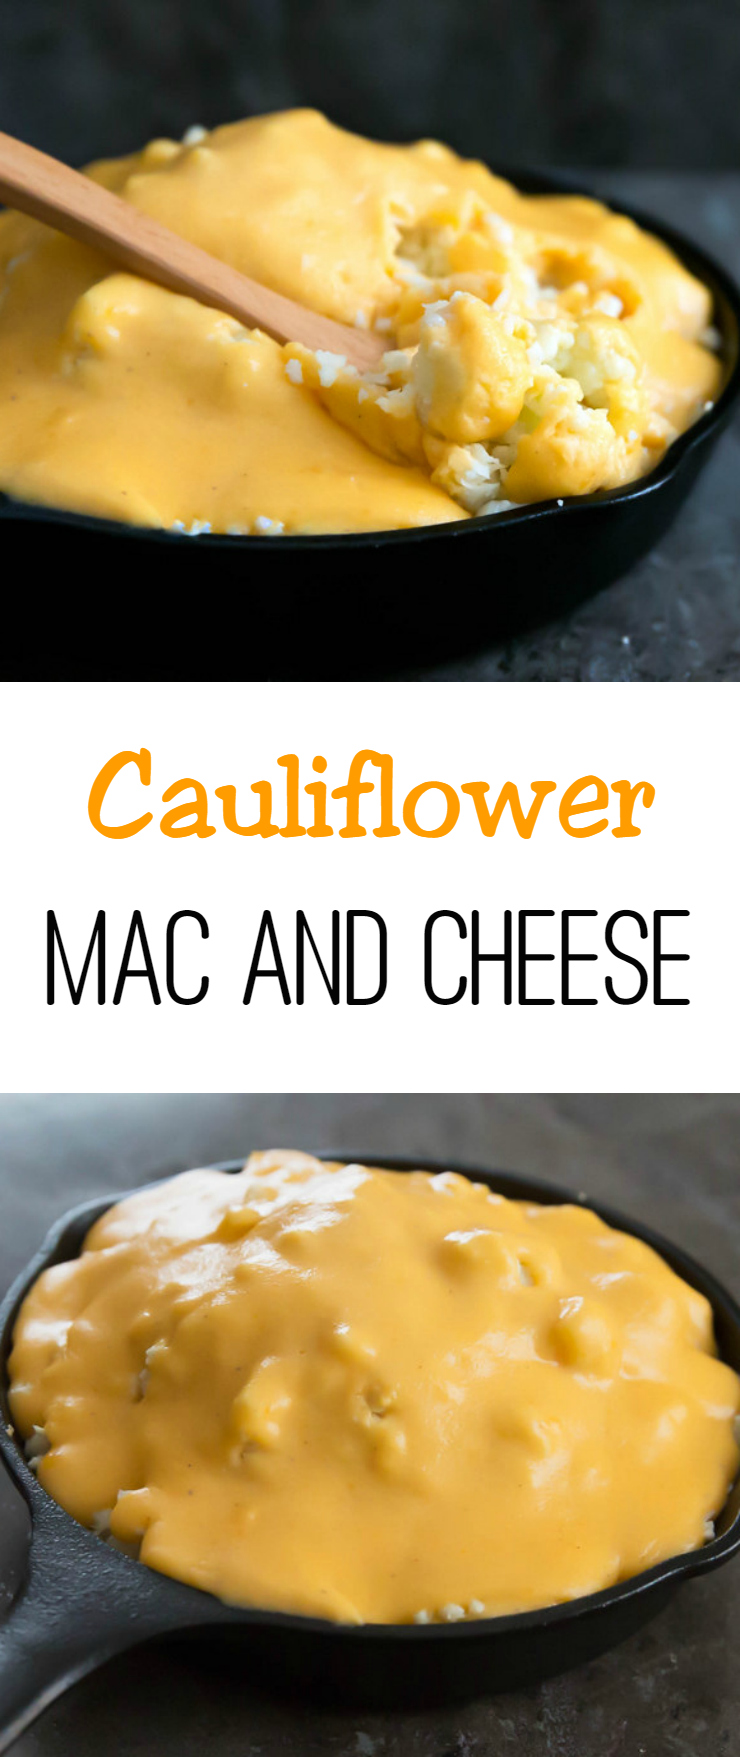 cauliflower mac and cheese photo collage